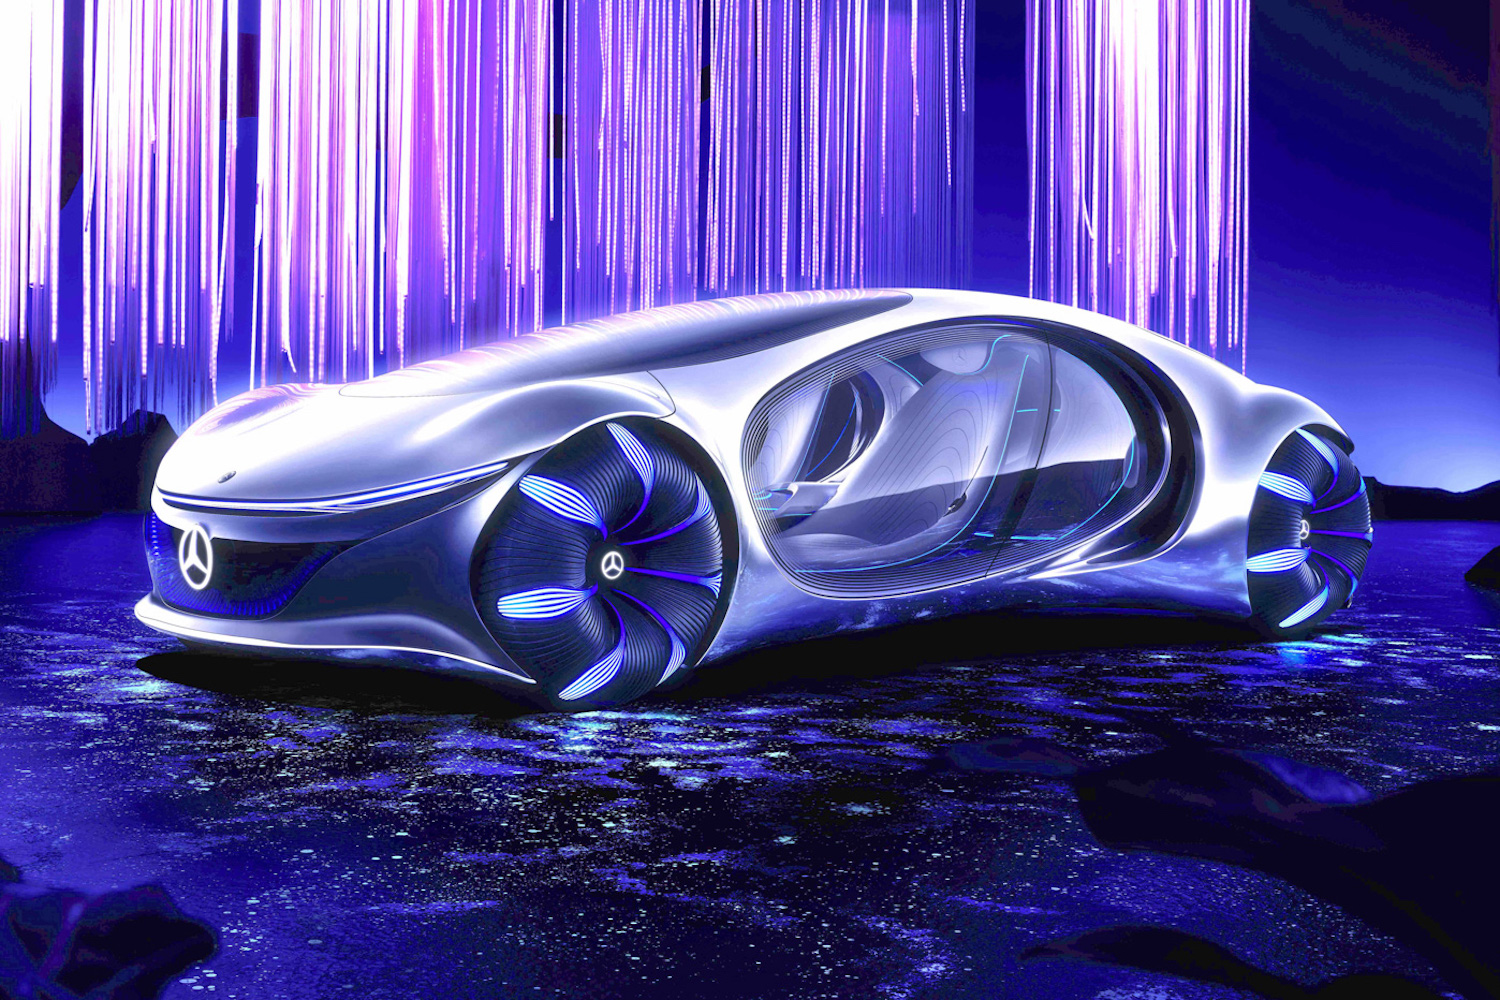 Car News | Mercedes-Benz to debut ten new models at Geneva | CompleteCar.ie